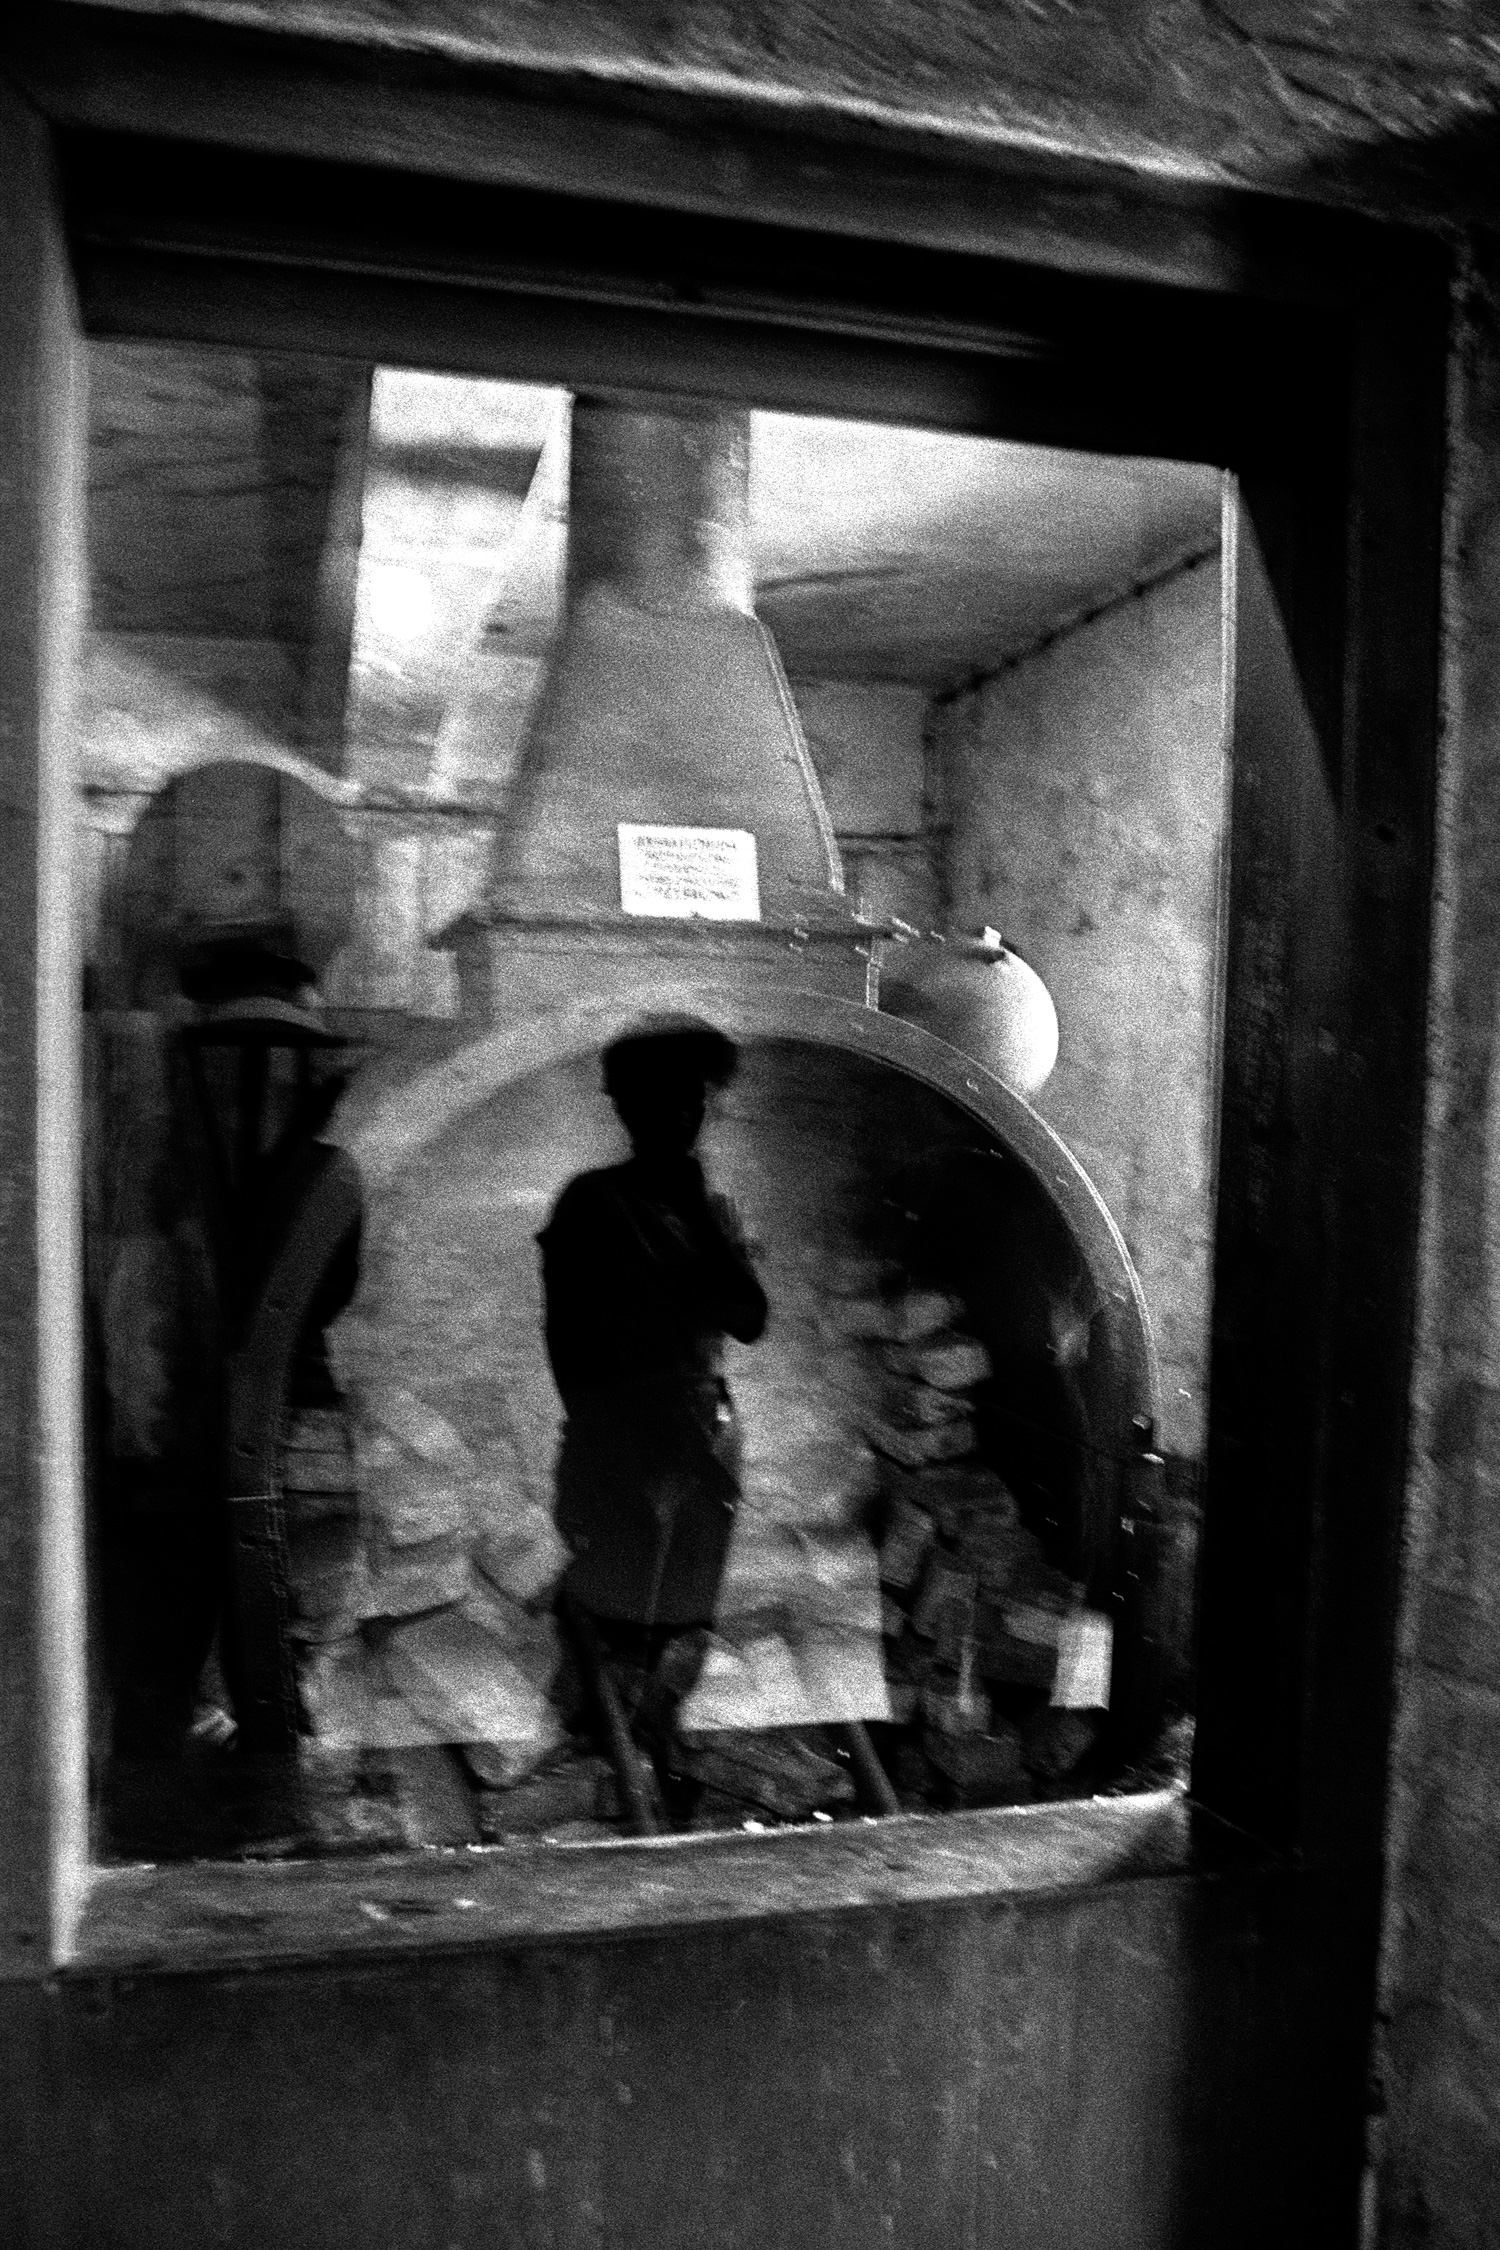 Reflection of Woman Viewing Oven